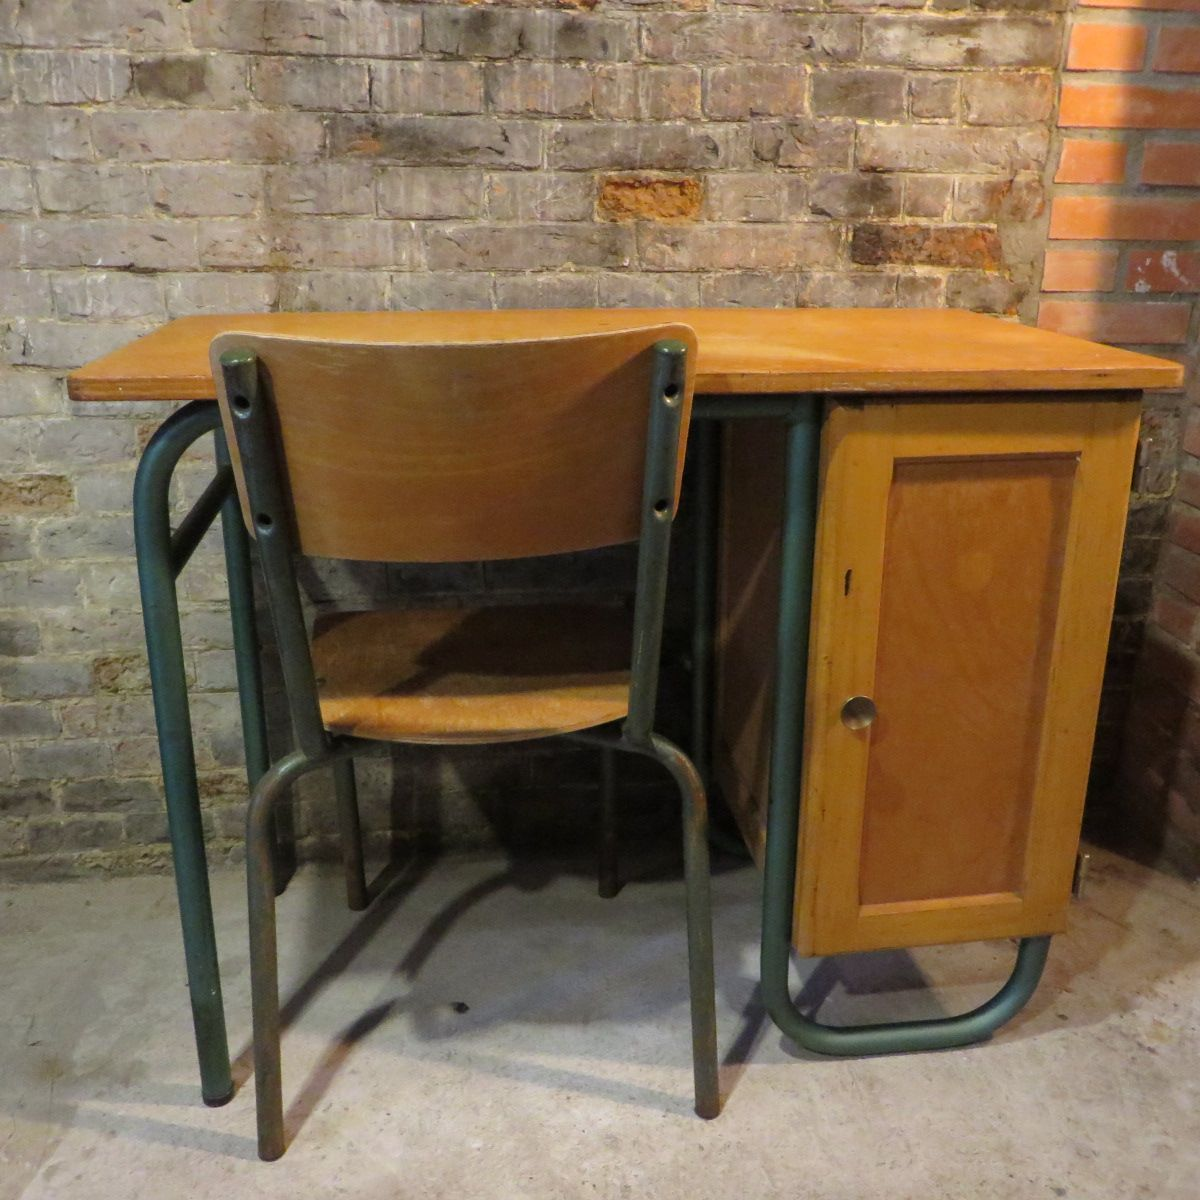 French School Desk with Chair 1960s for sale at Pamono